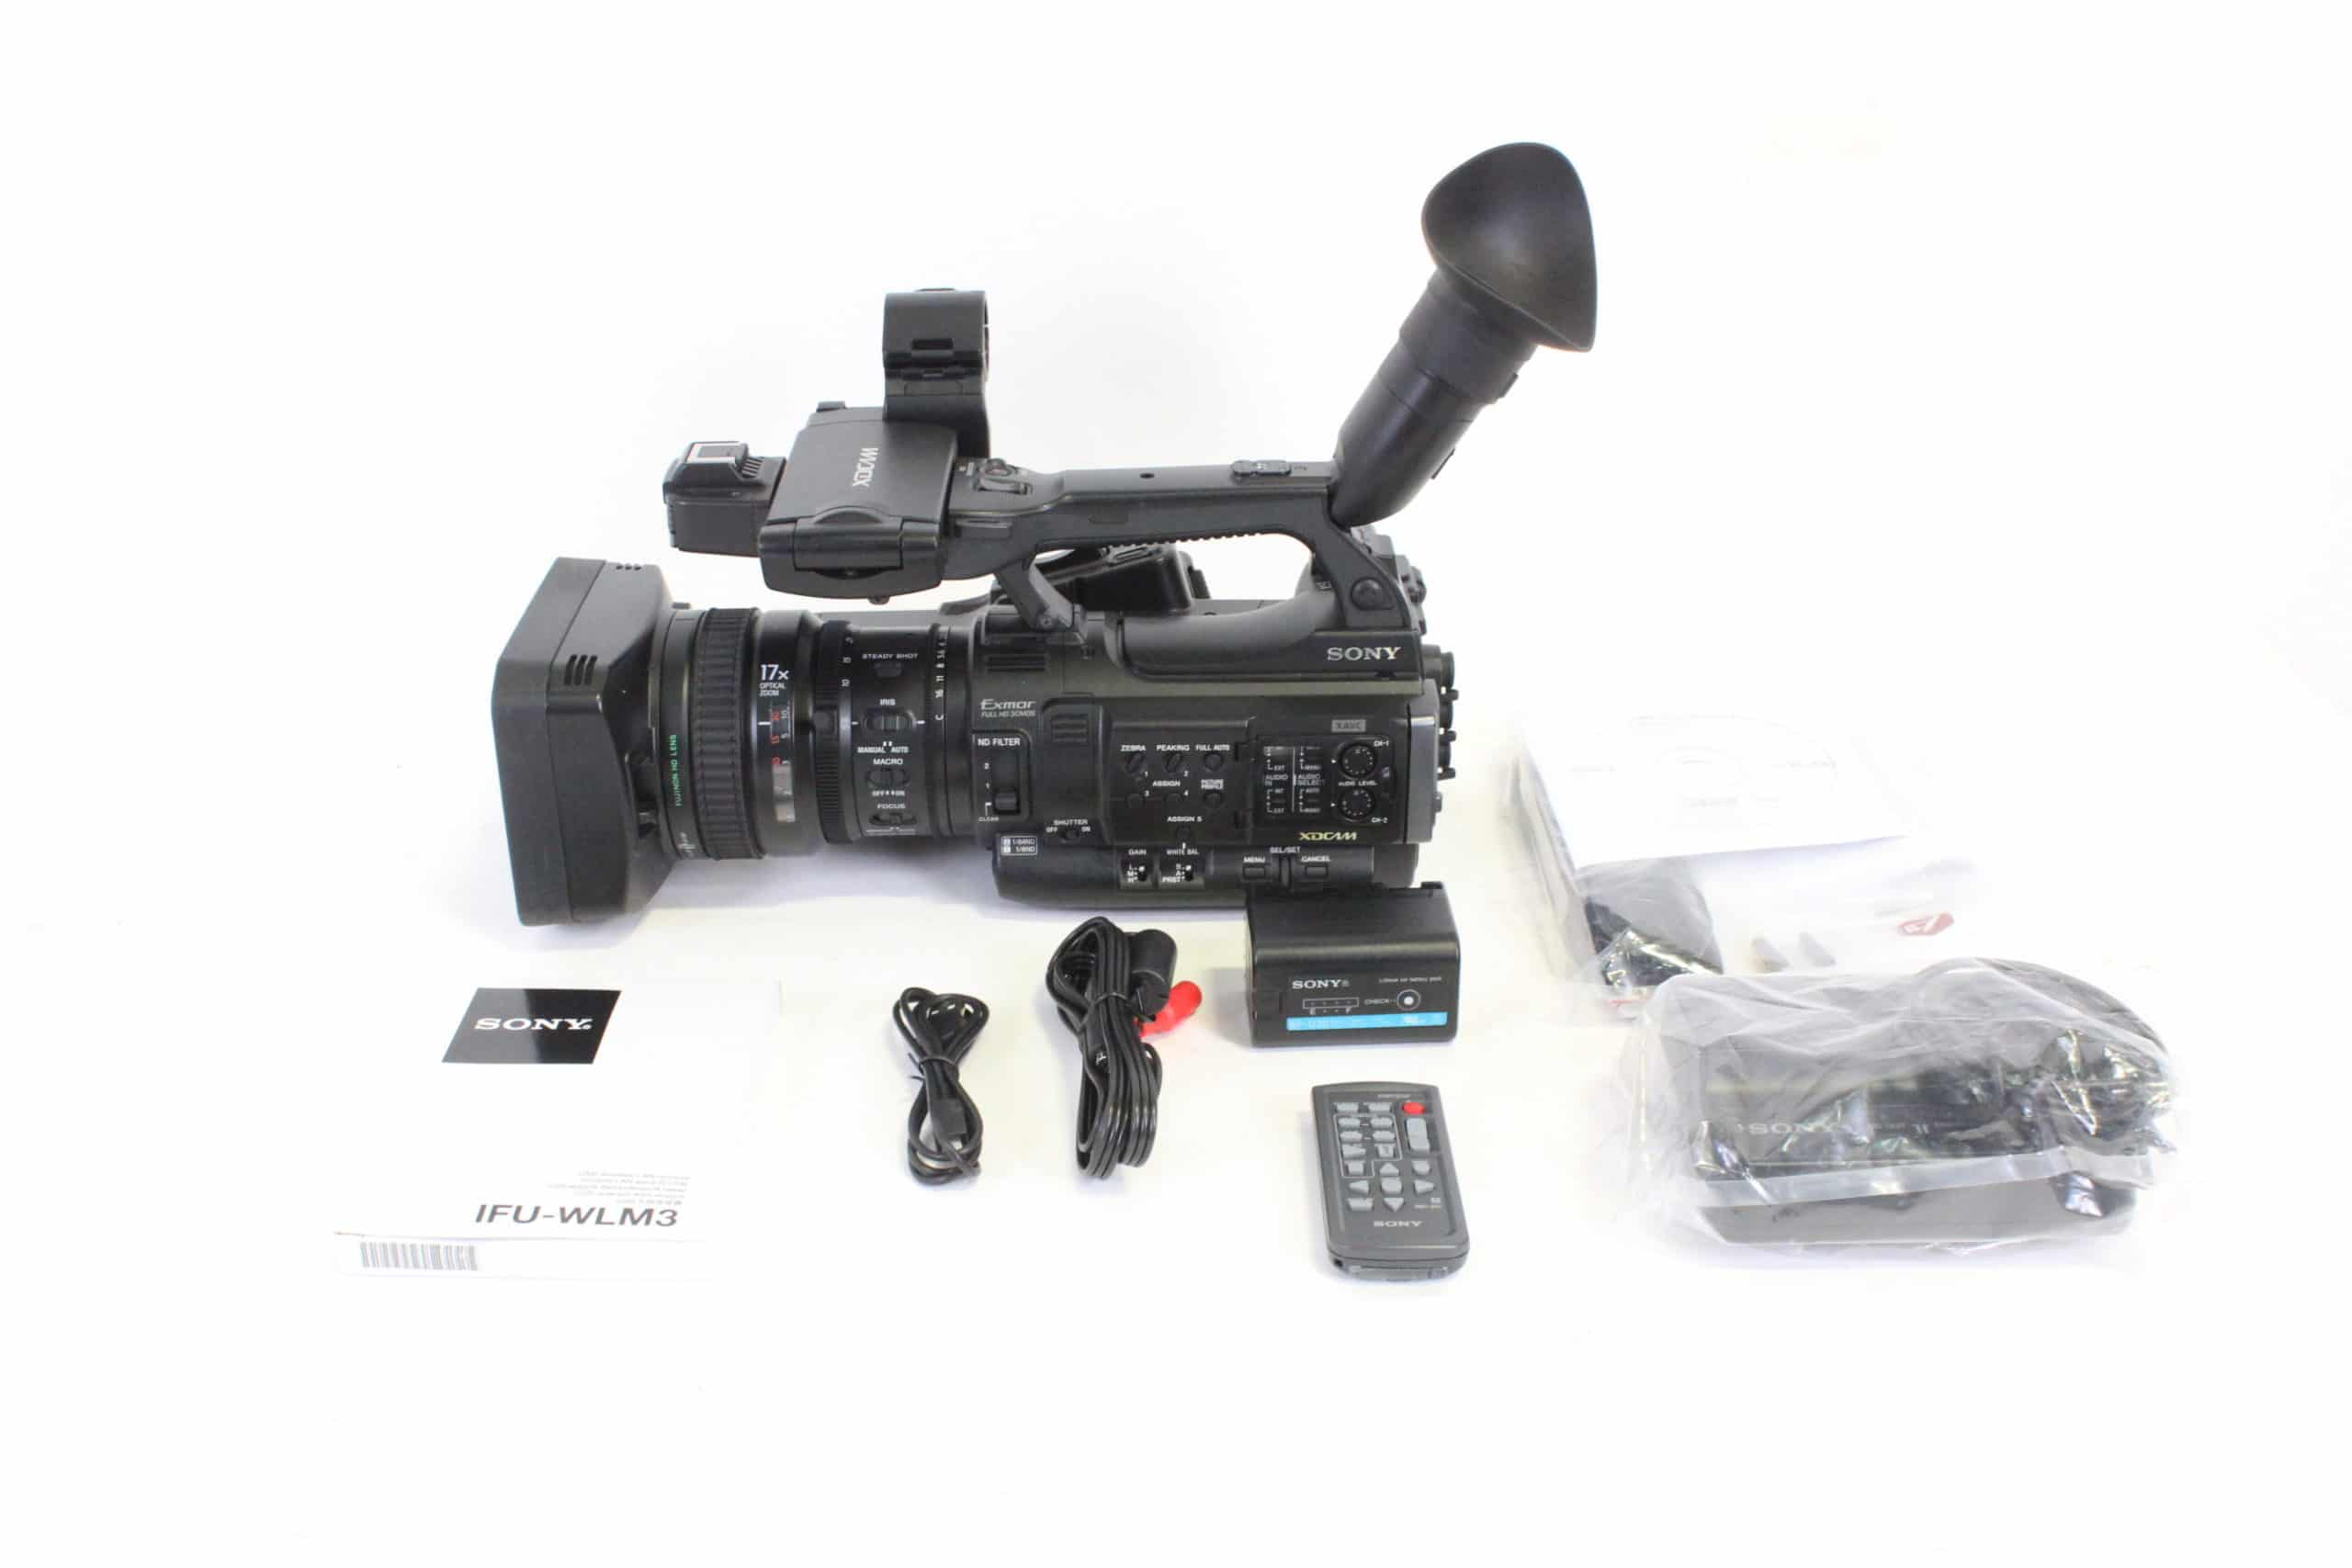 sony-pxw-x200-xdcam-solid-state-memory-handheld-camcorder-w-17x-optical-zoom-lens-psu-accessories-included-515-hrs-original-box-copy MAIN